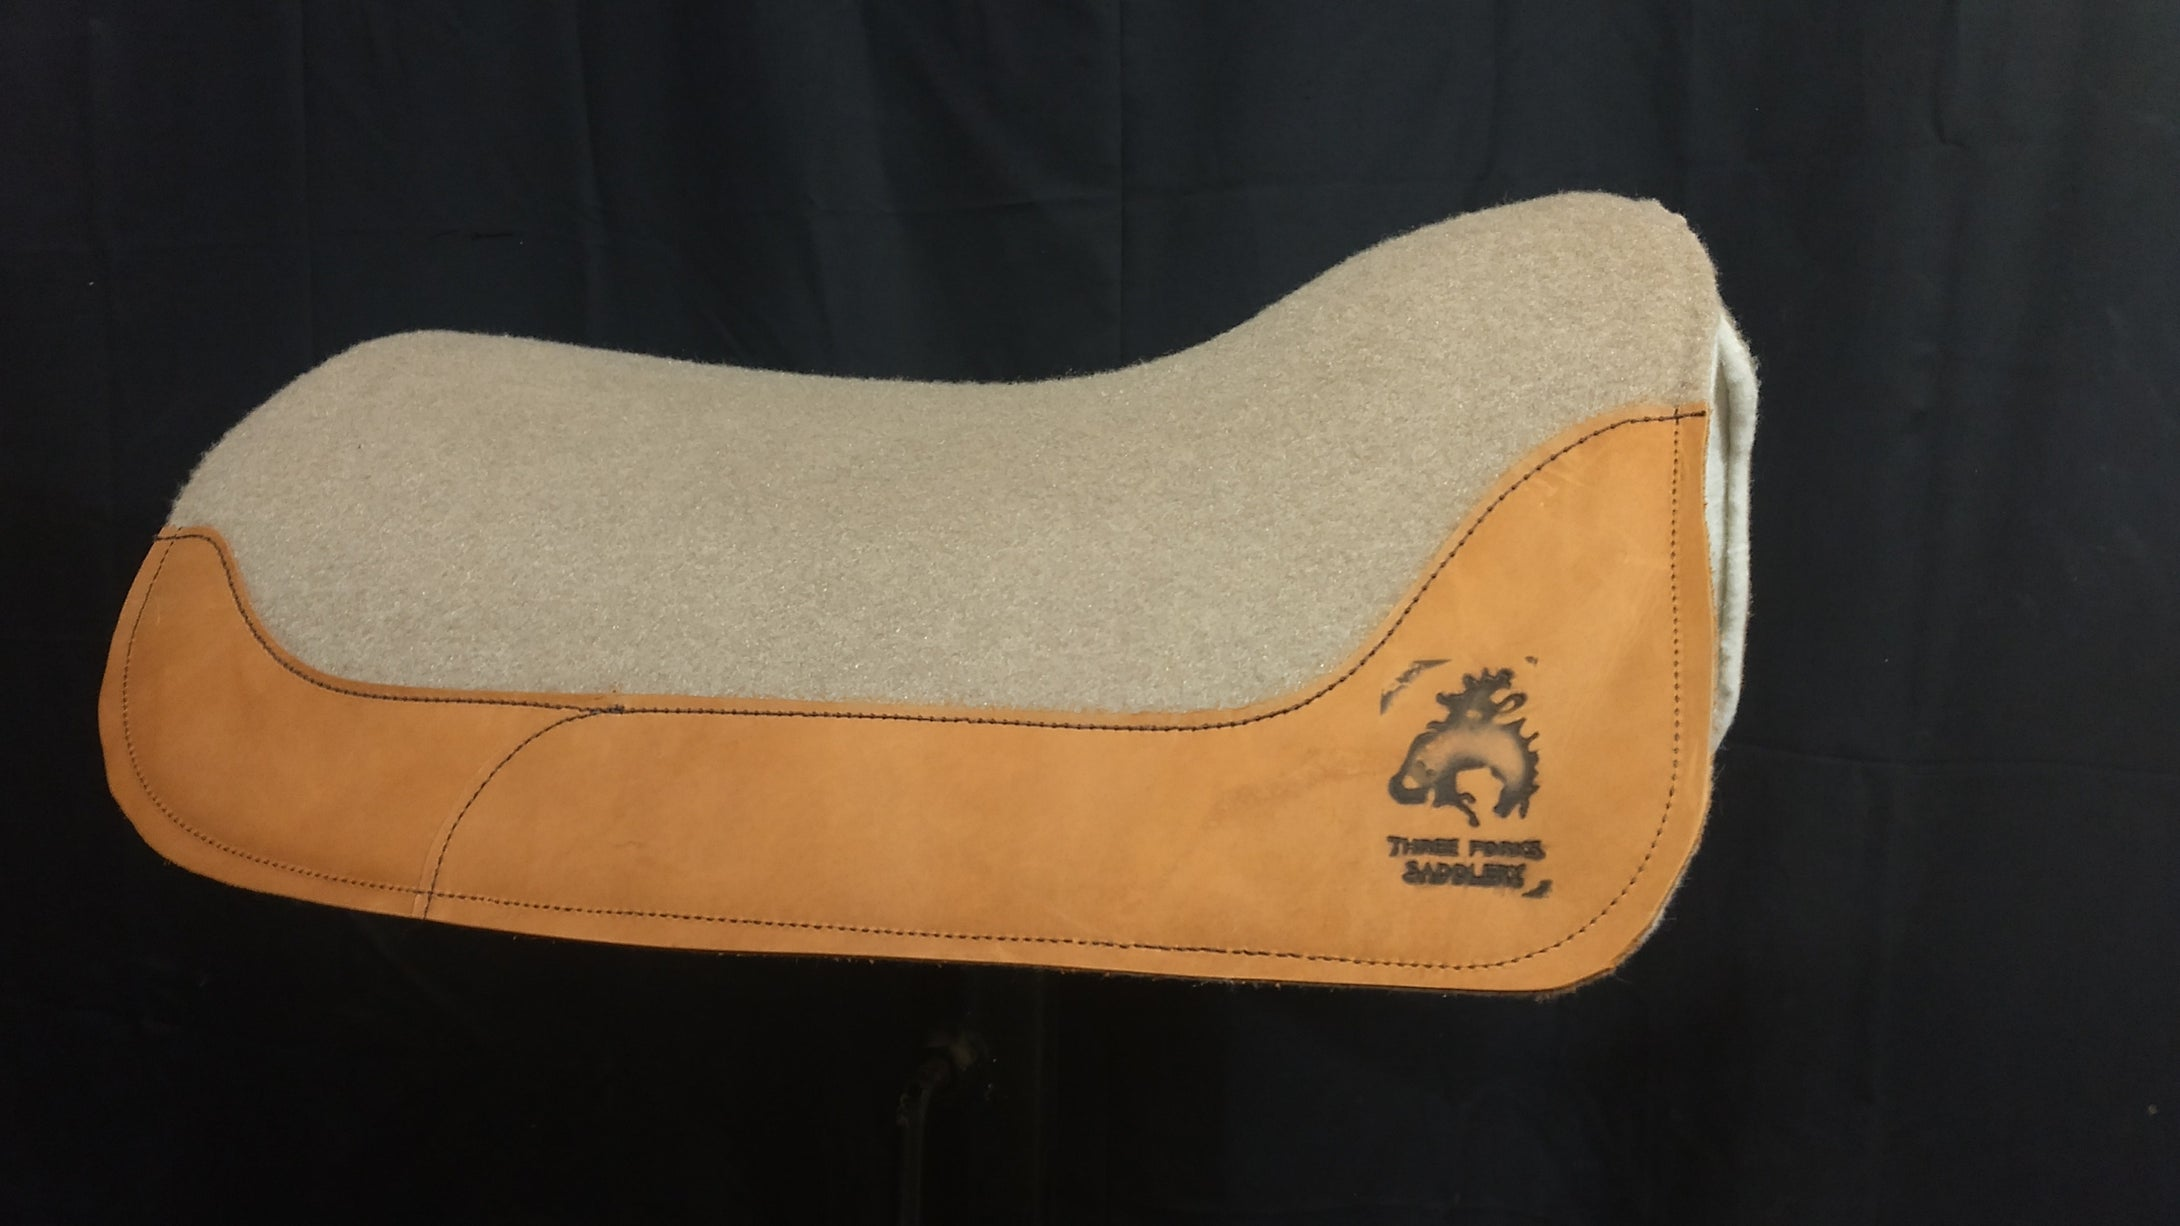 Merrill Barrel Pad